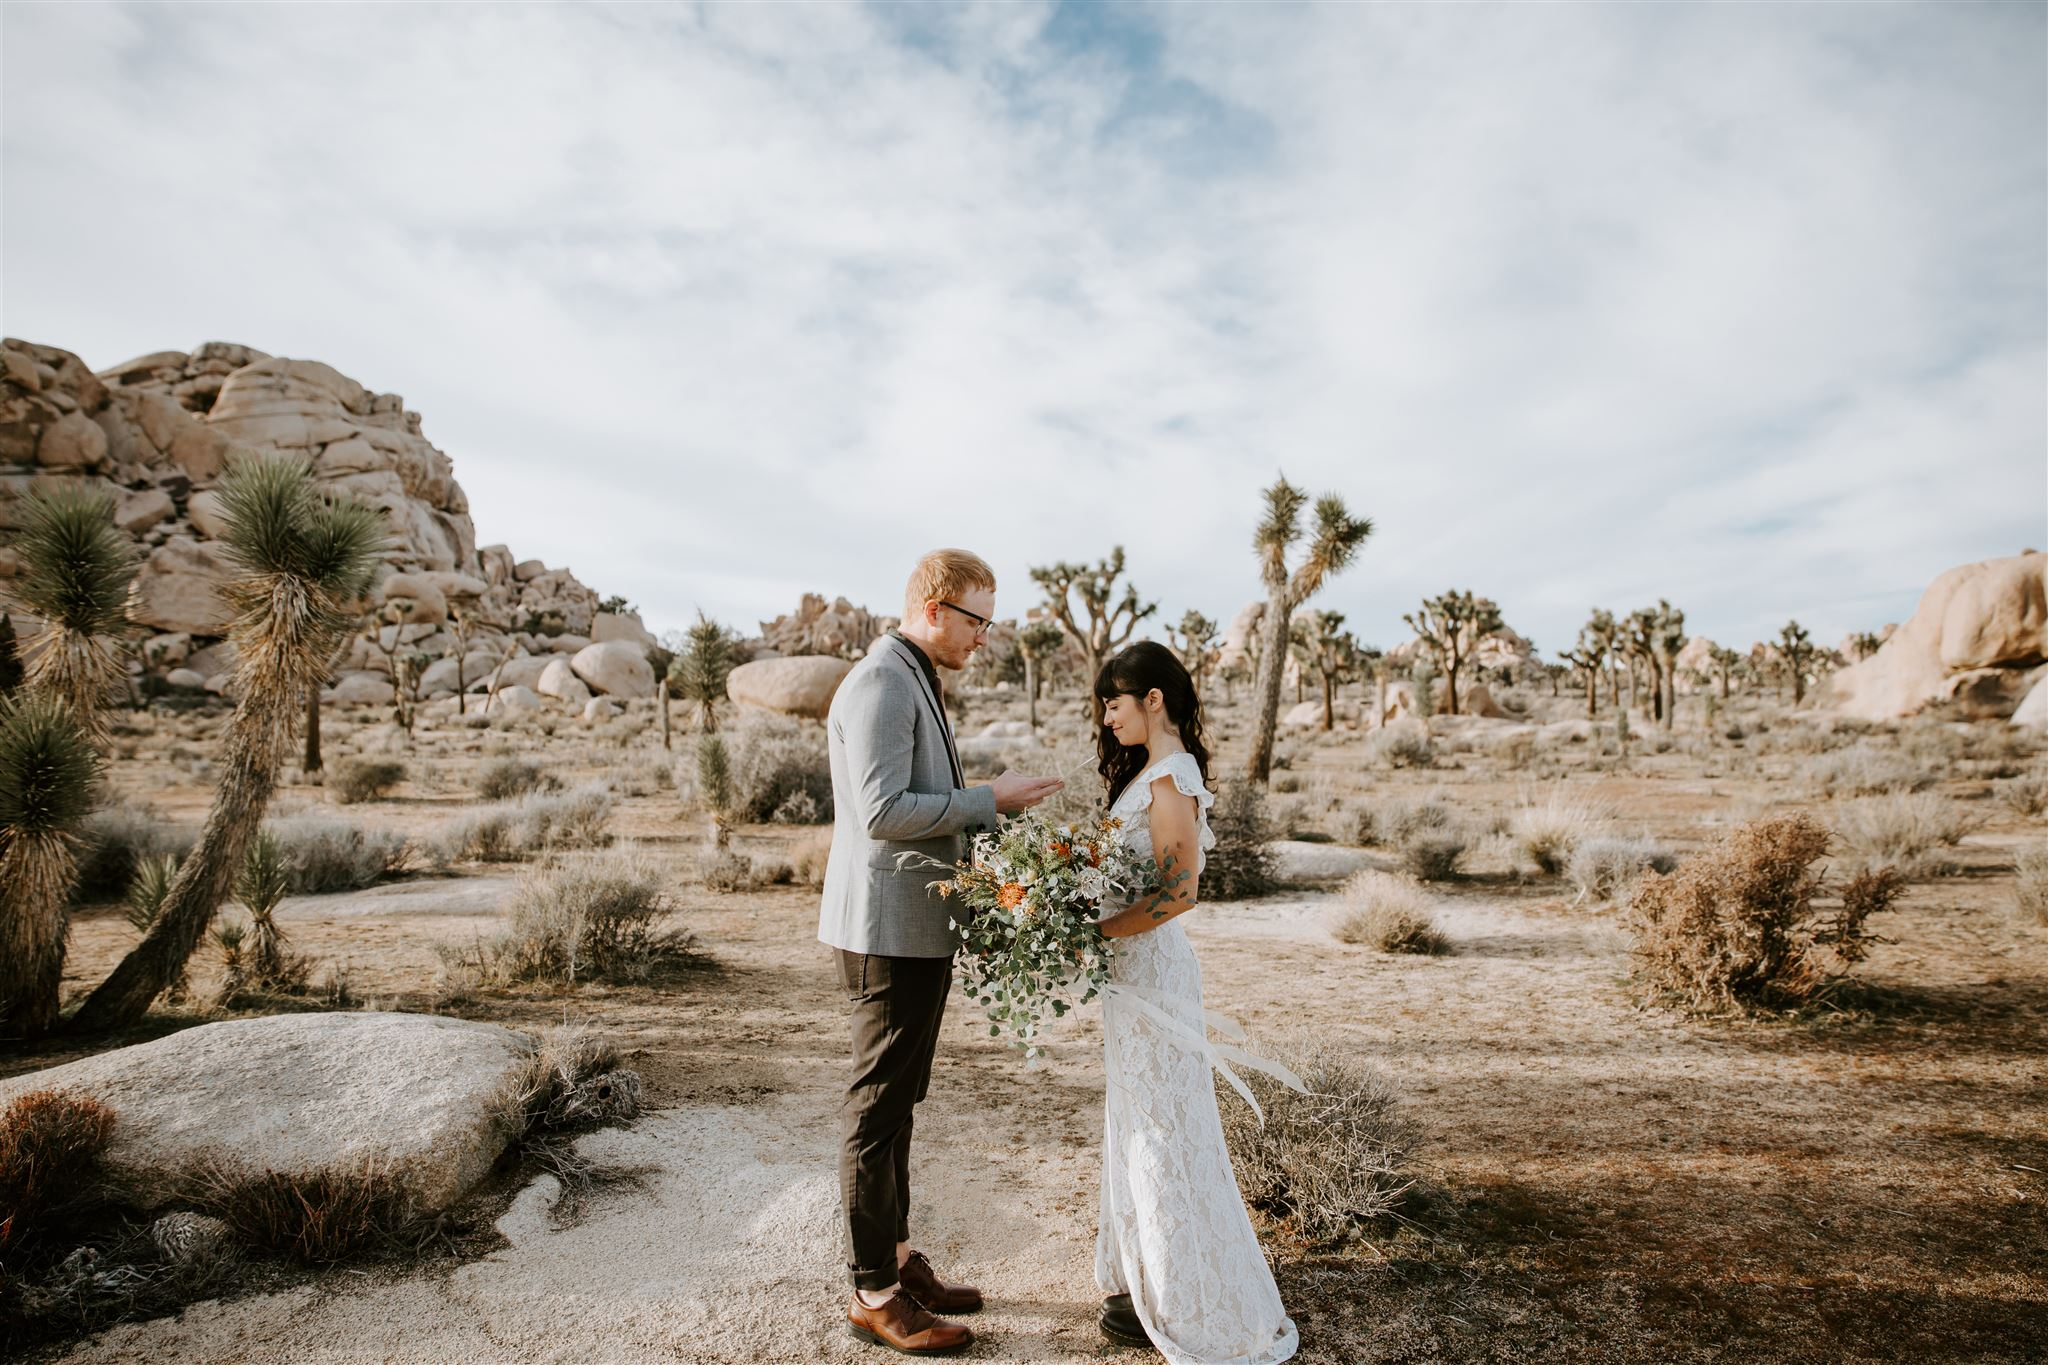 Joshua Tree CA Elopement Wedding  Photographer May Iosotaluno 39.jpg